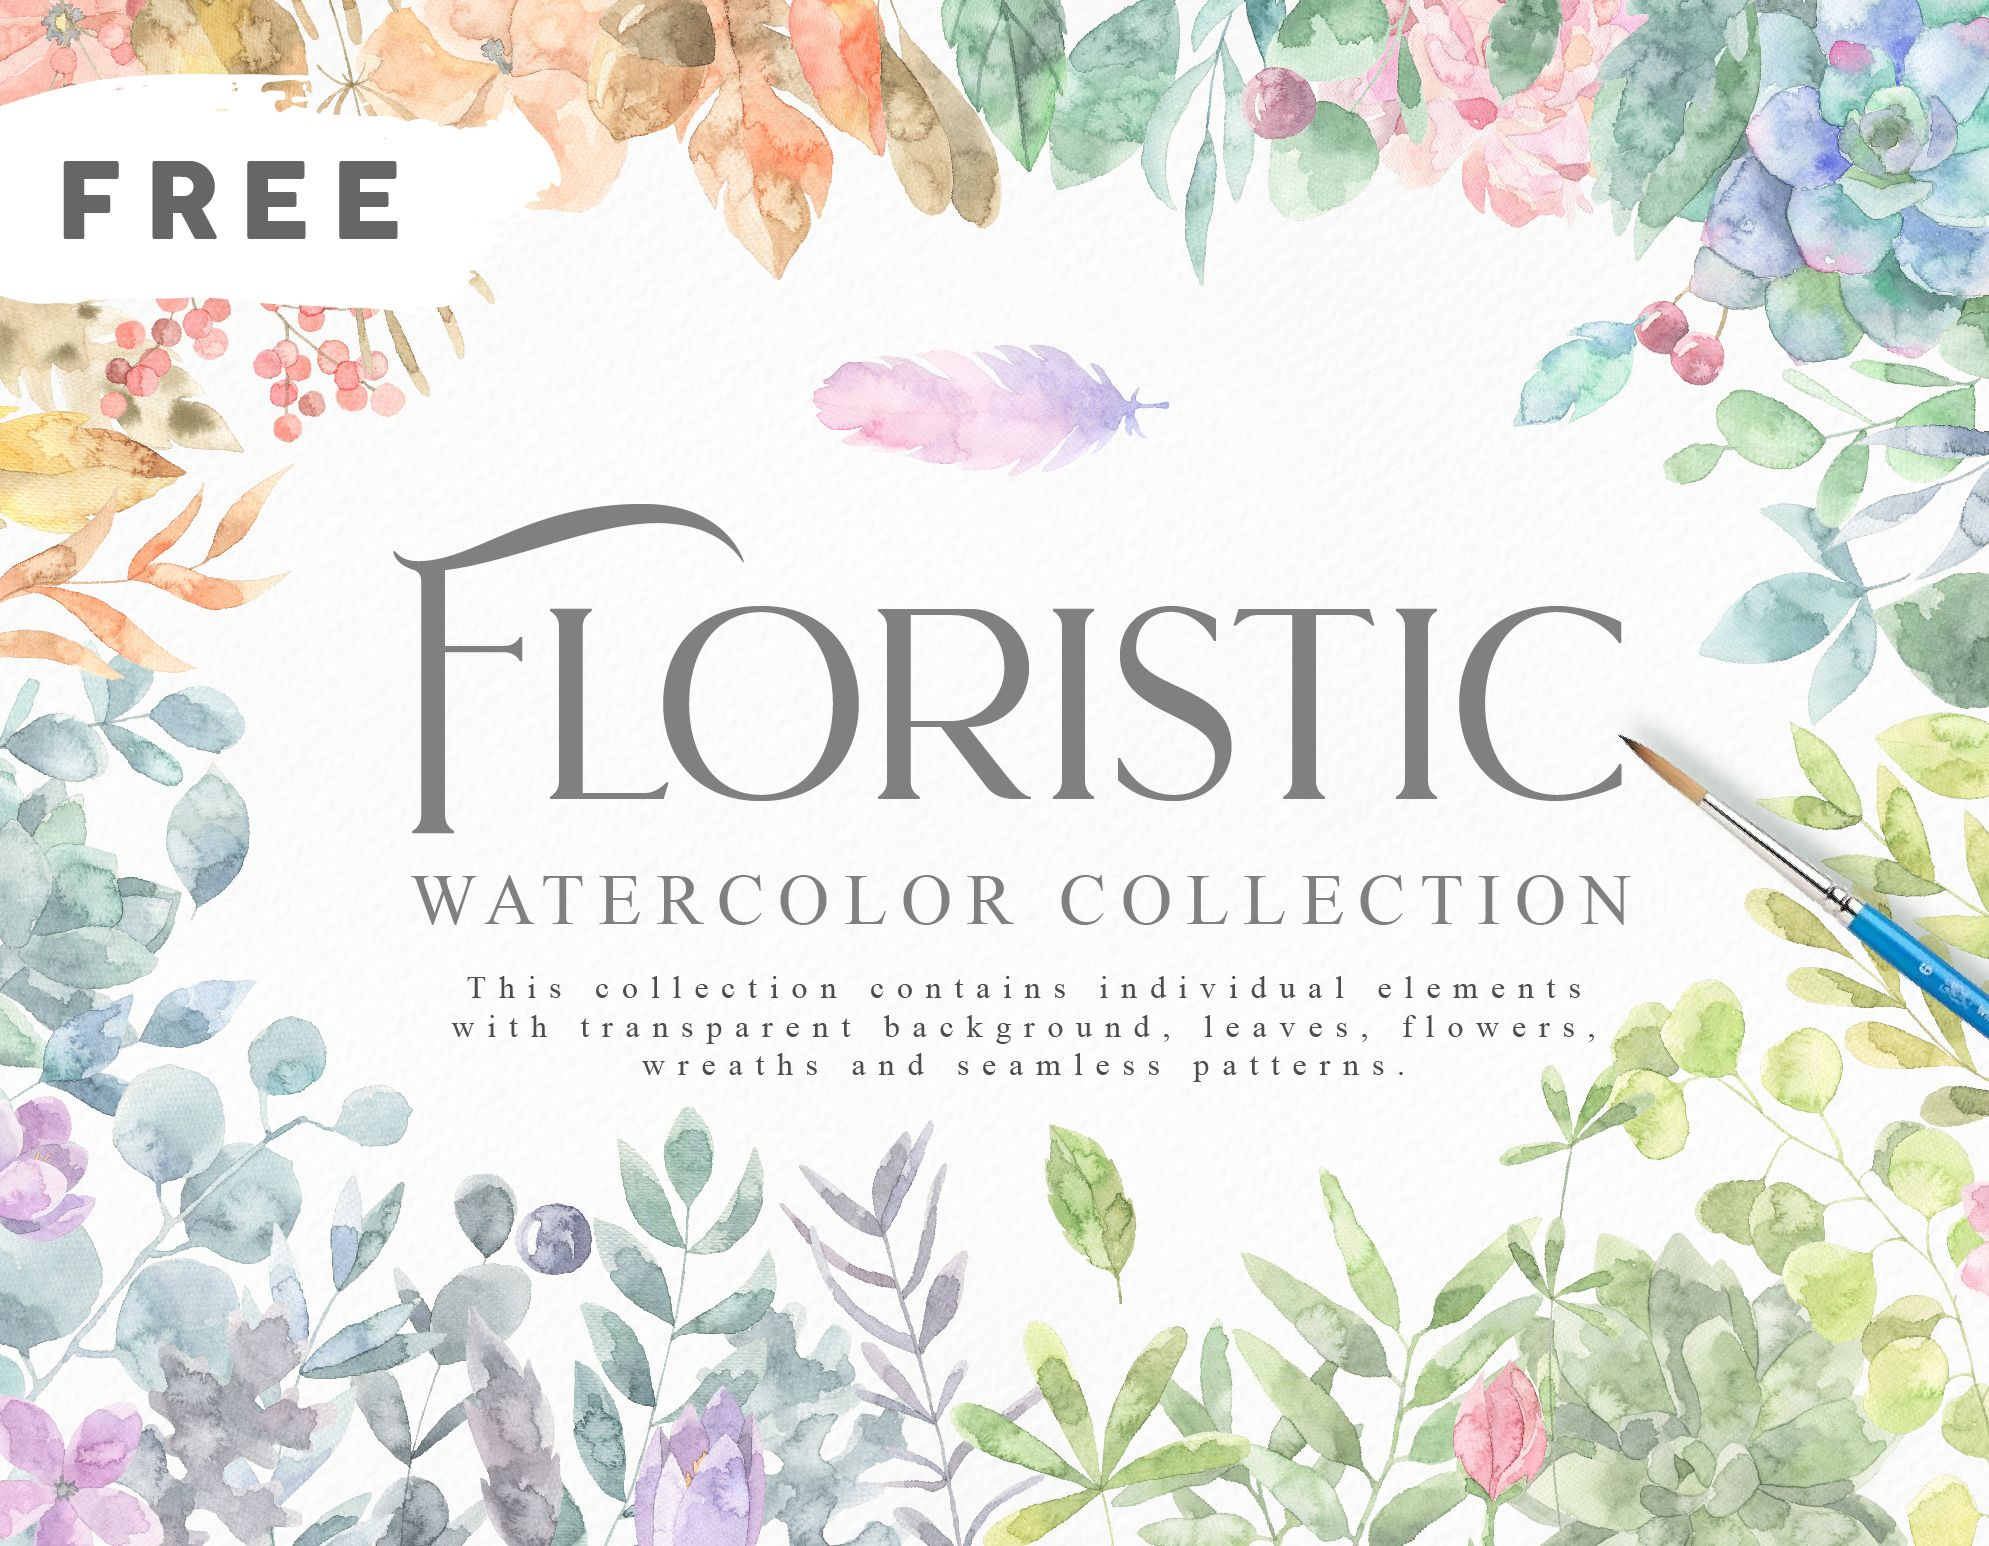 Floristic Watercolor Collection Free Graphics Illustrations